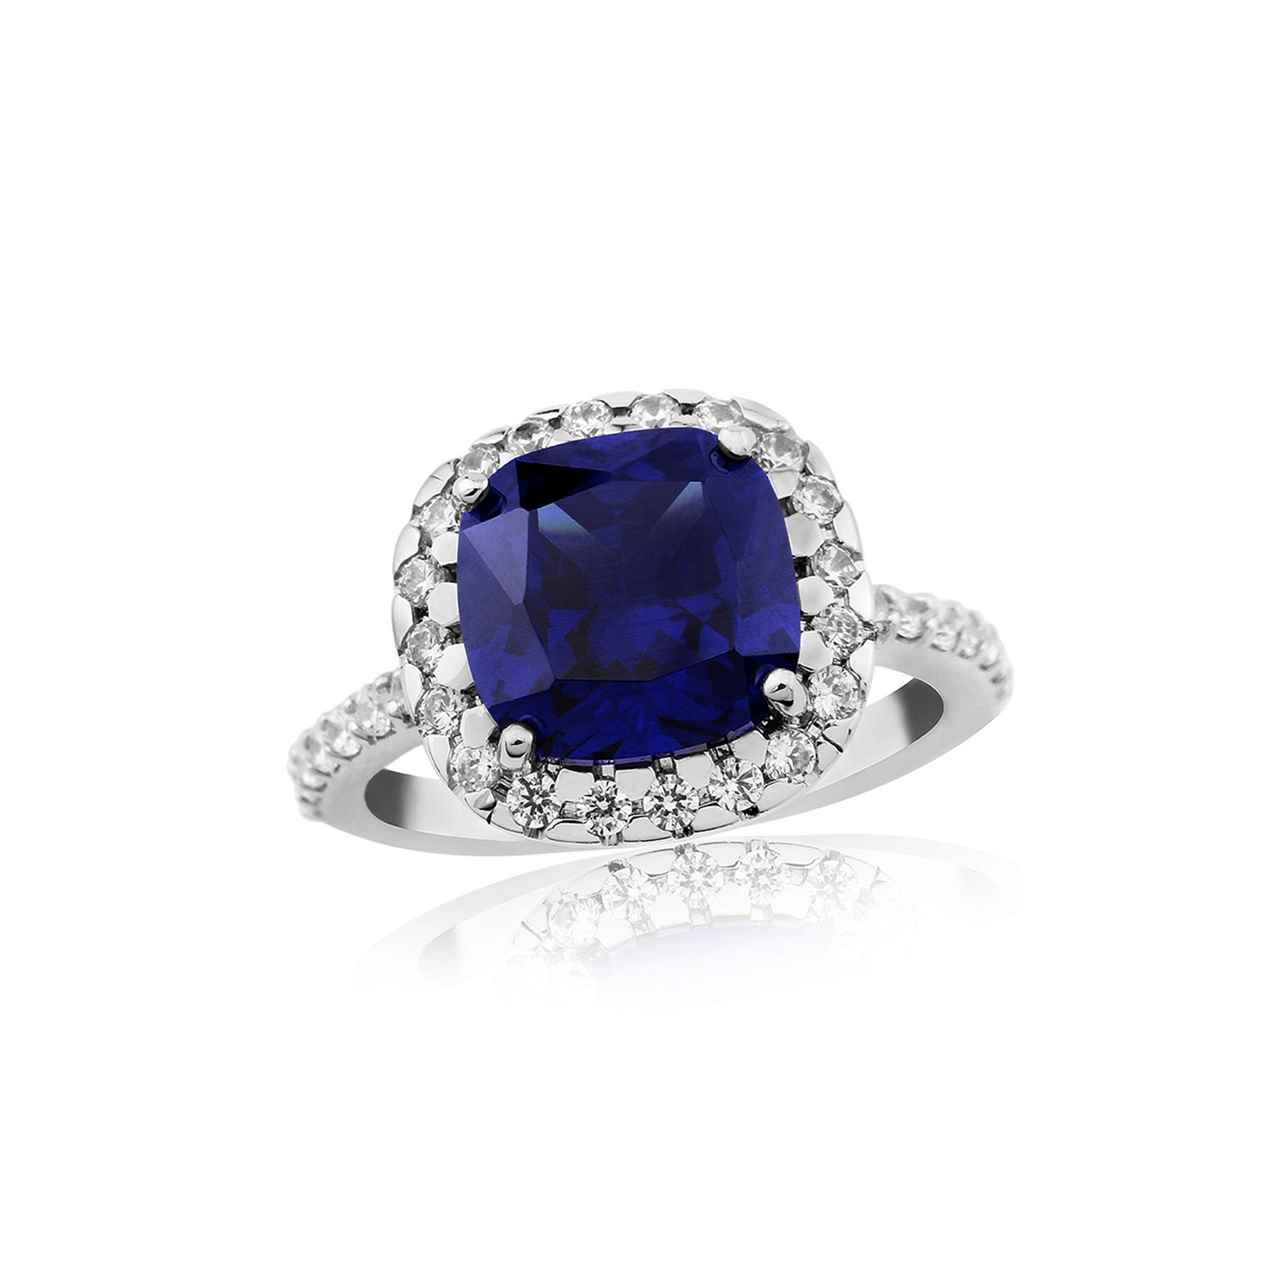 Sapphire Cushion with Cubic Zirconia Ring – Extra Large